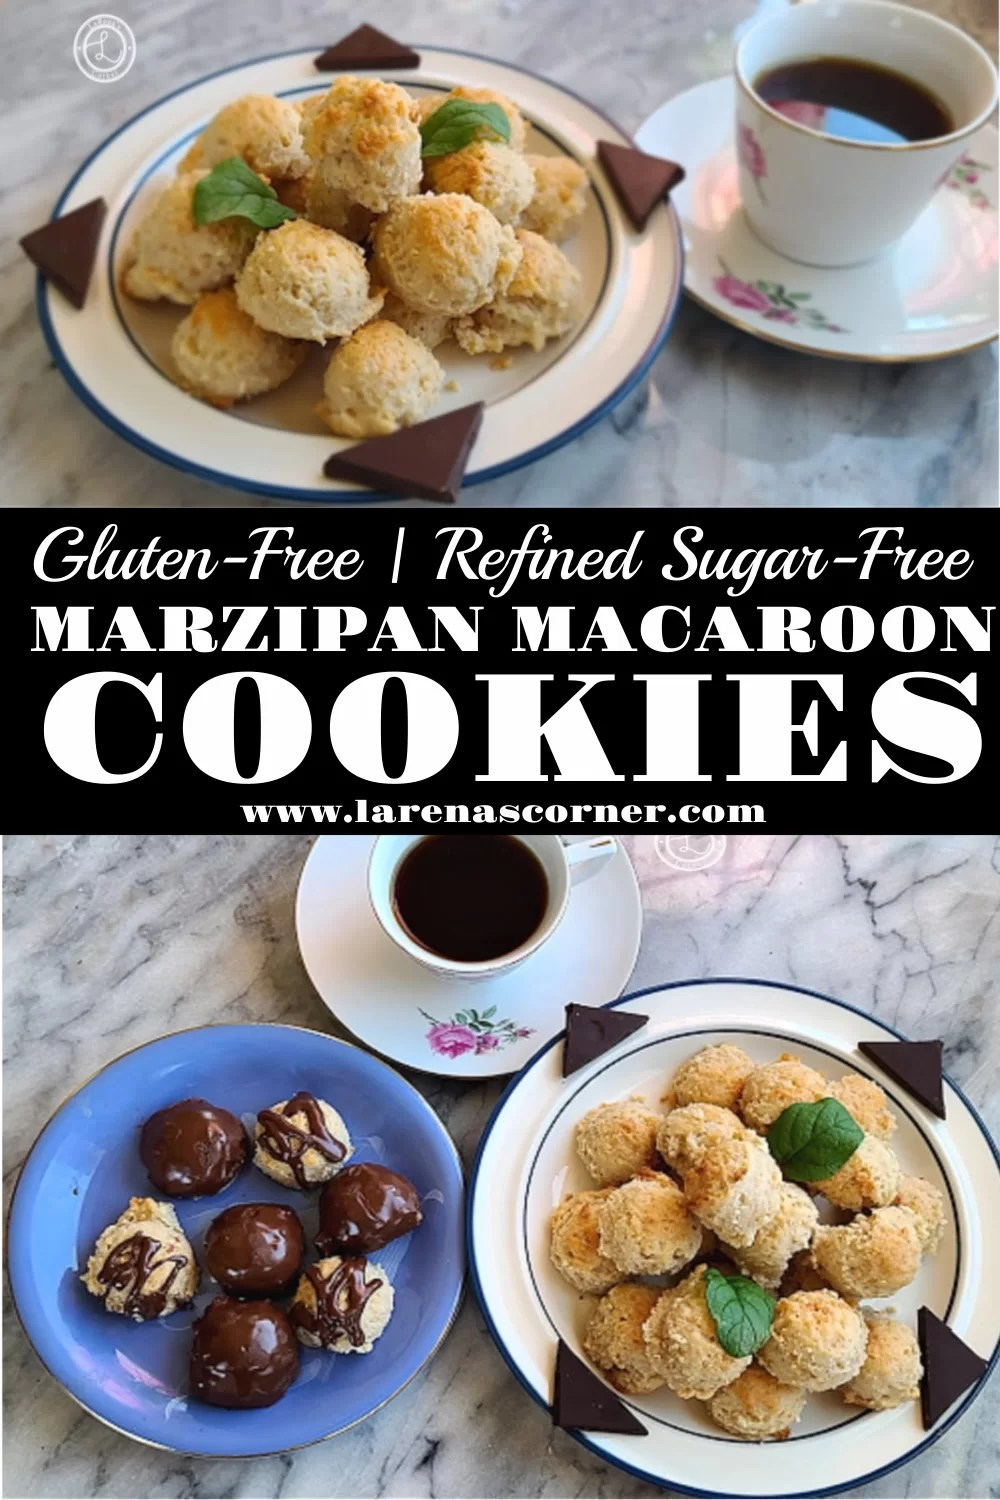 Two Pictures of Dairy-Free Marzipan Macaroon Cookies. One Picture of chocolate dipped cookies and plain cookies on a plate. One picture of just plain cookies.